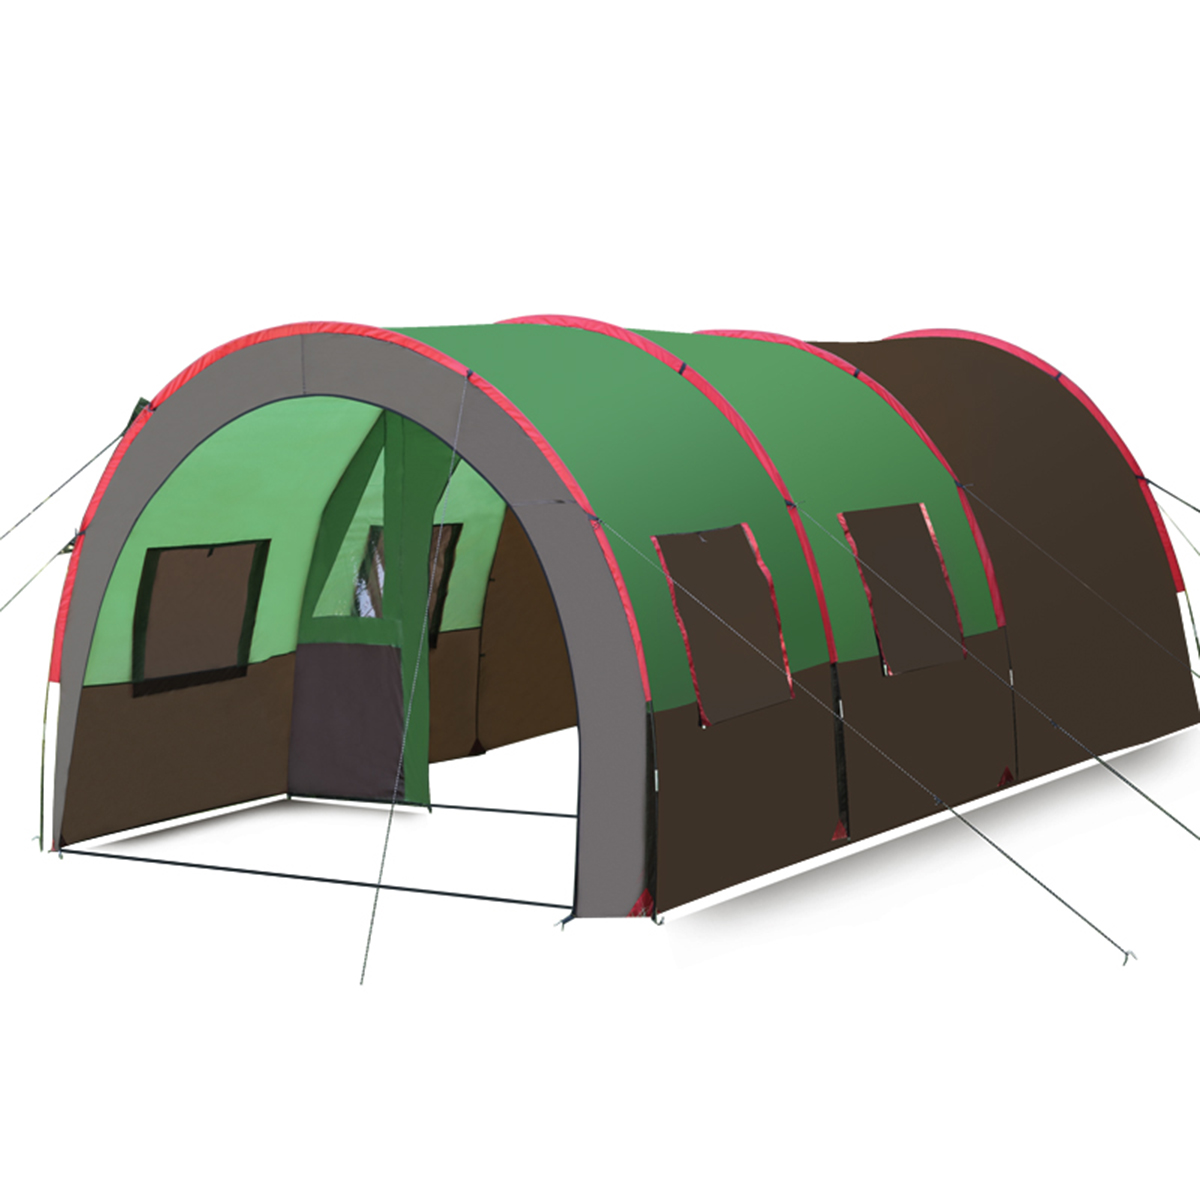 Outdoor Tents 8-10 Person One Room Two Hall Large Camping Waterproof Family Tent Fully Sun Shelter Gazebo Party Camping Hiking octagonal outdoor camping tent large space family tent 5 8 persons waterproof awning shelter beach party tent double door tents